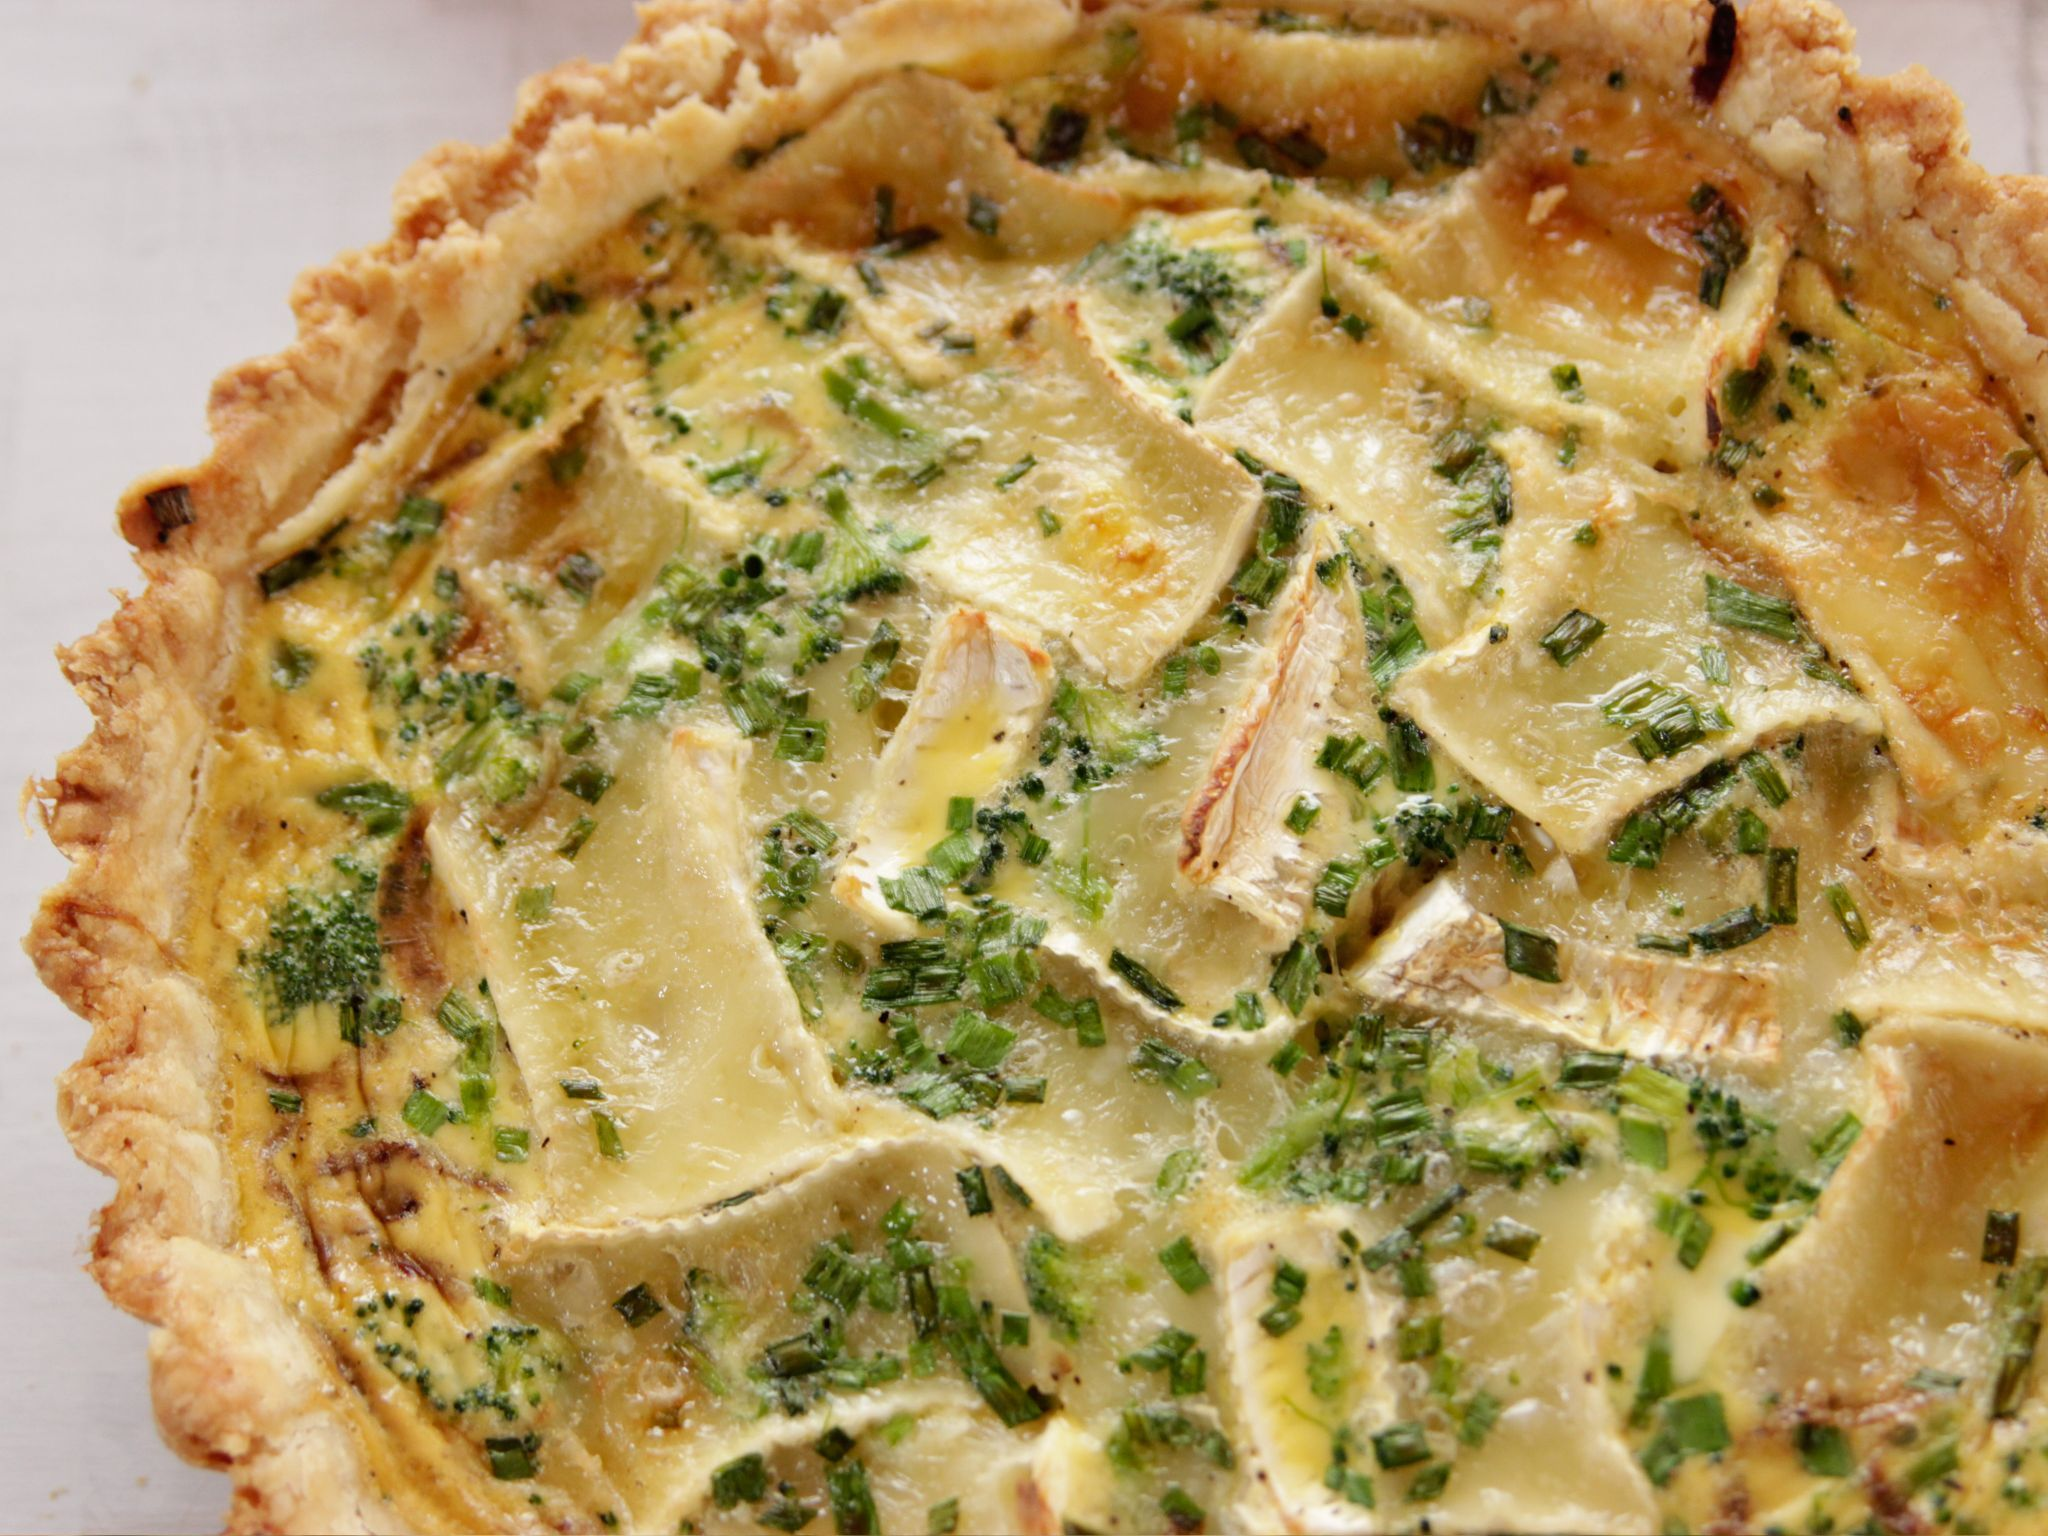 Brie and broccoli quiche recipe quiche recipes quiches and brie brie and broccoli quiche forumfinder Image collections